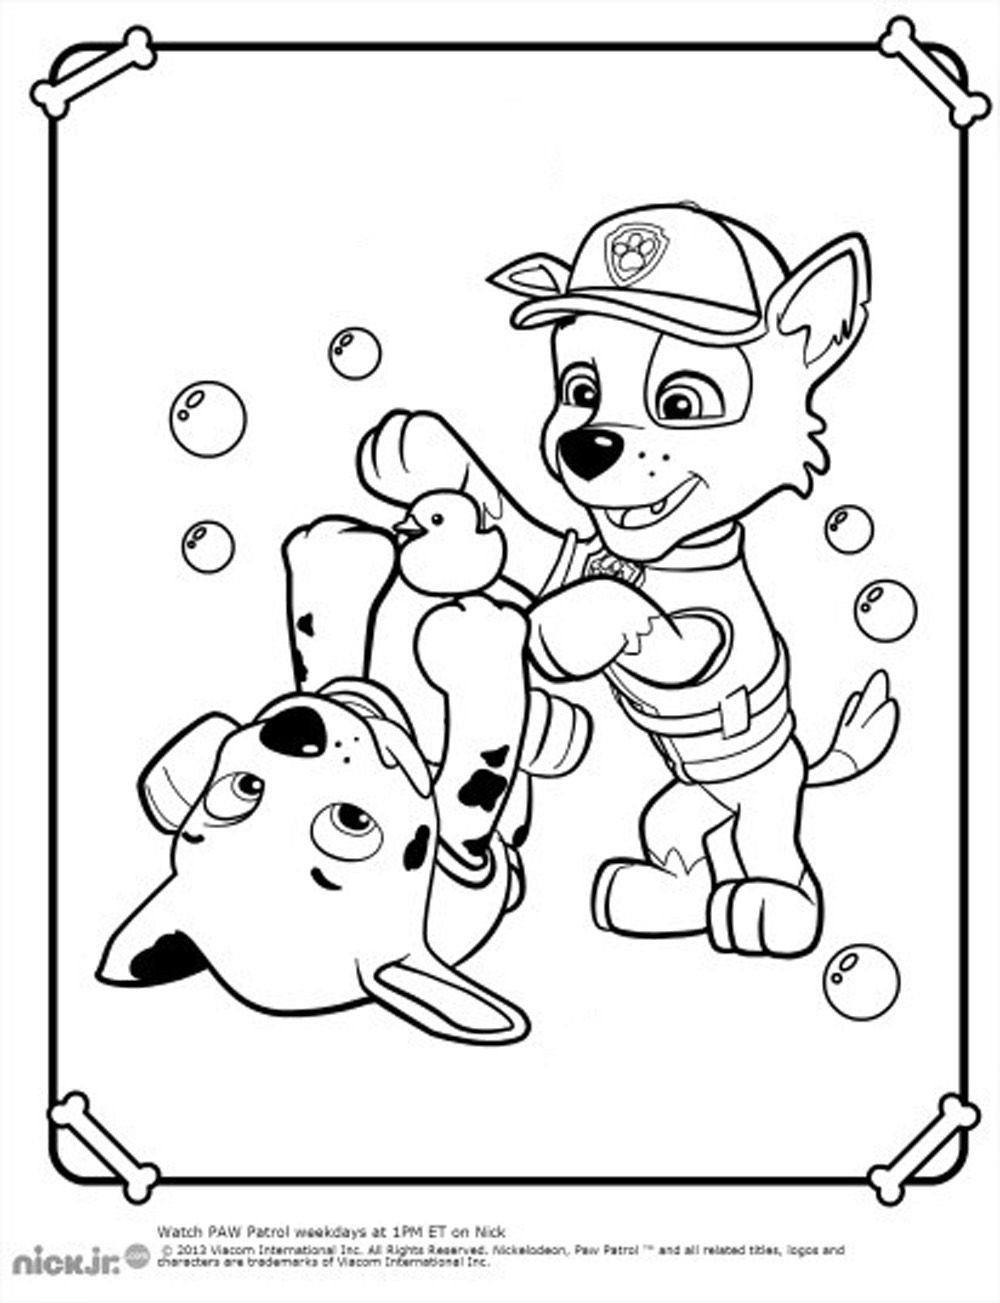 Coloriage Pat Patrouille 6 Jpg 1000 1303 Coloring Pages